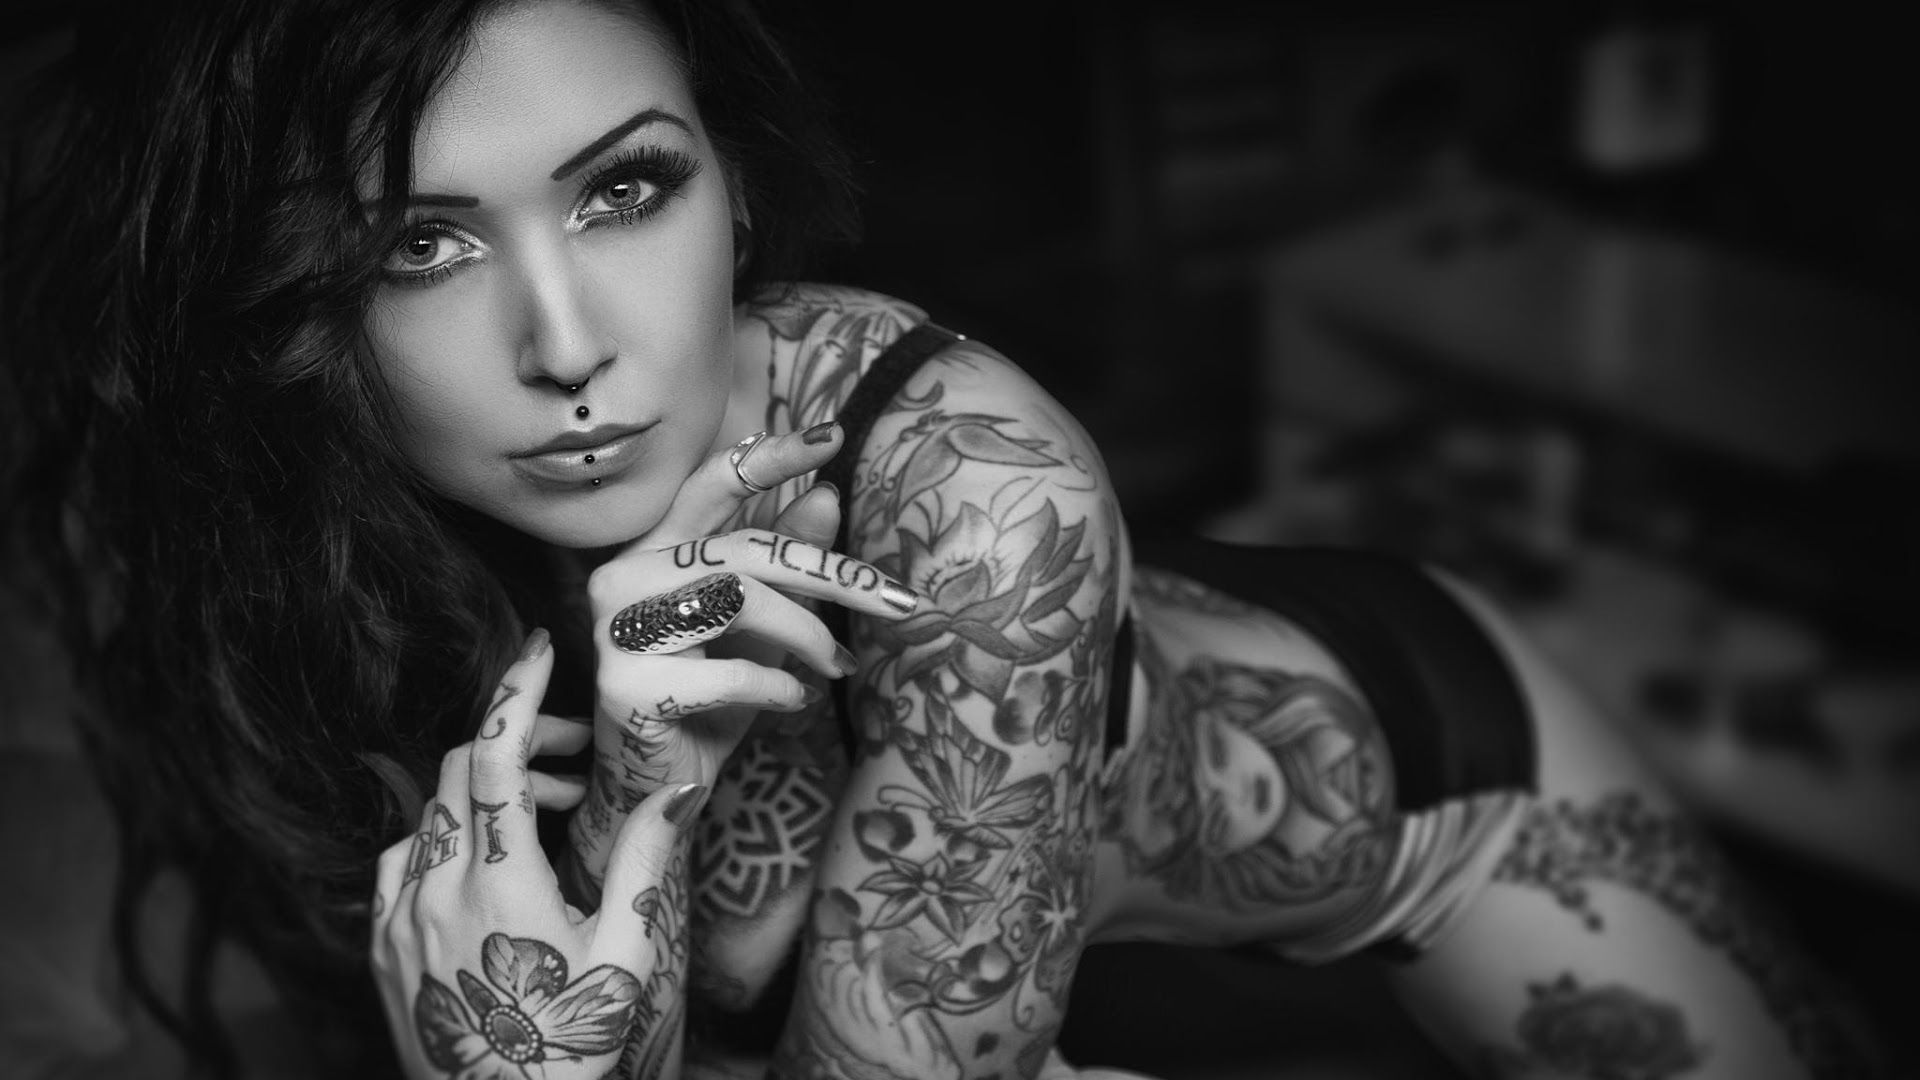 tattoo girl hd wallpaper - photo #7